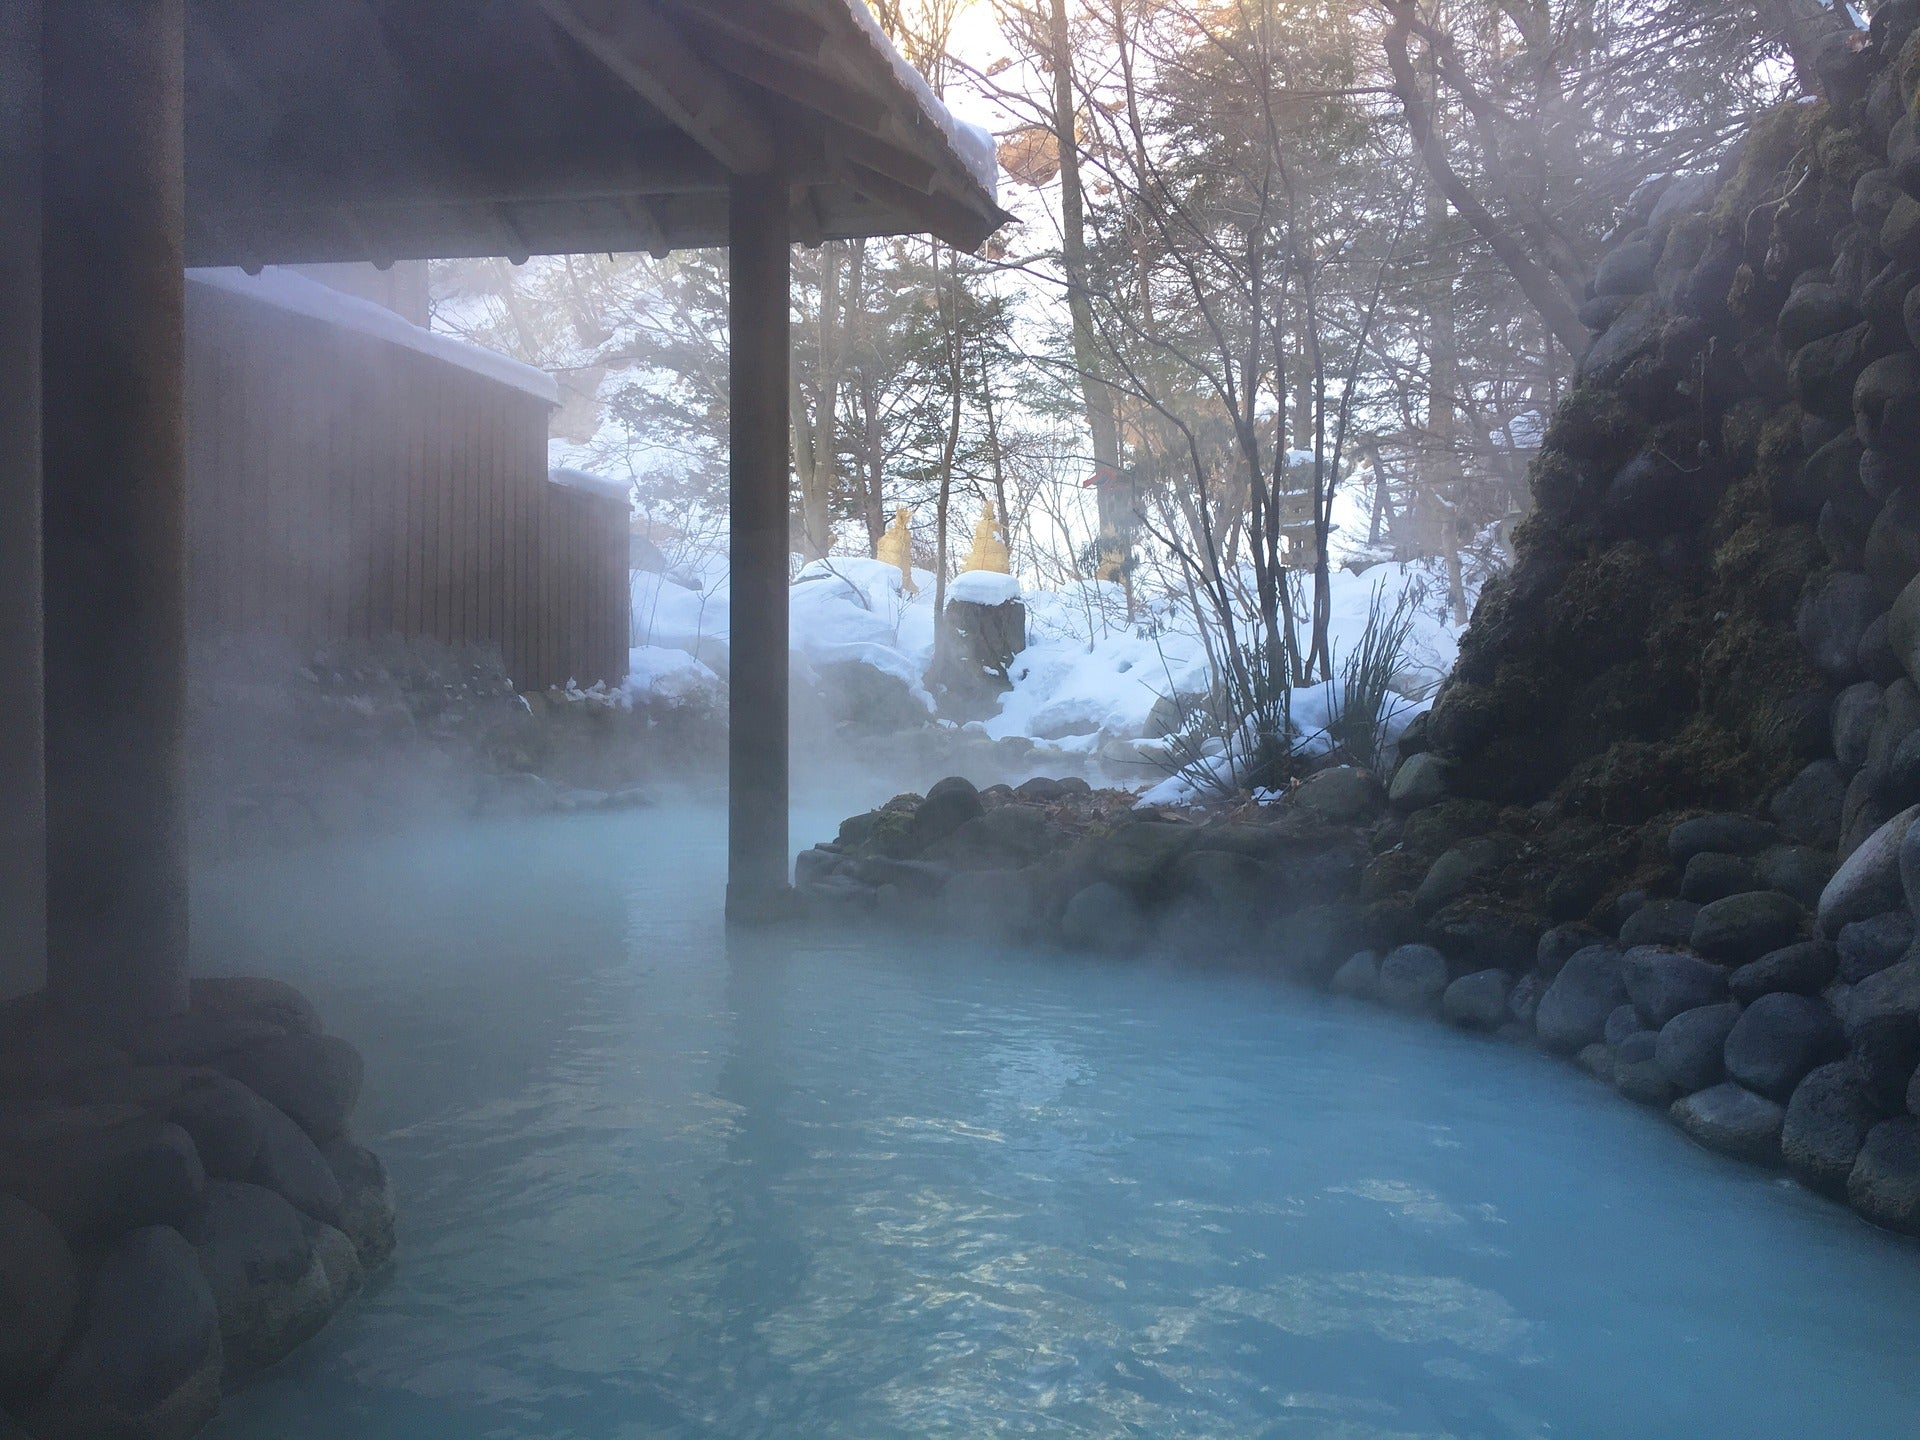 Onsen water: what effects does it have on the skin?